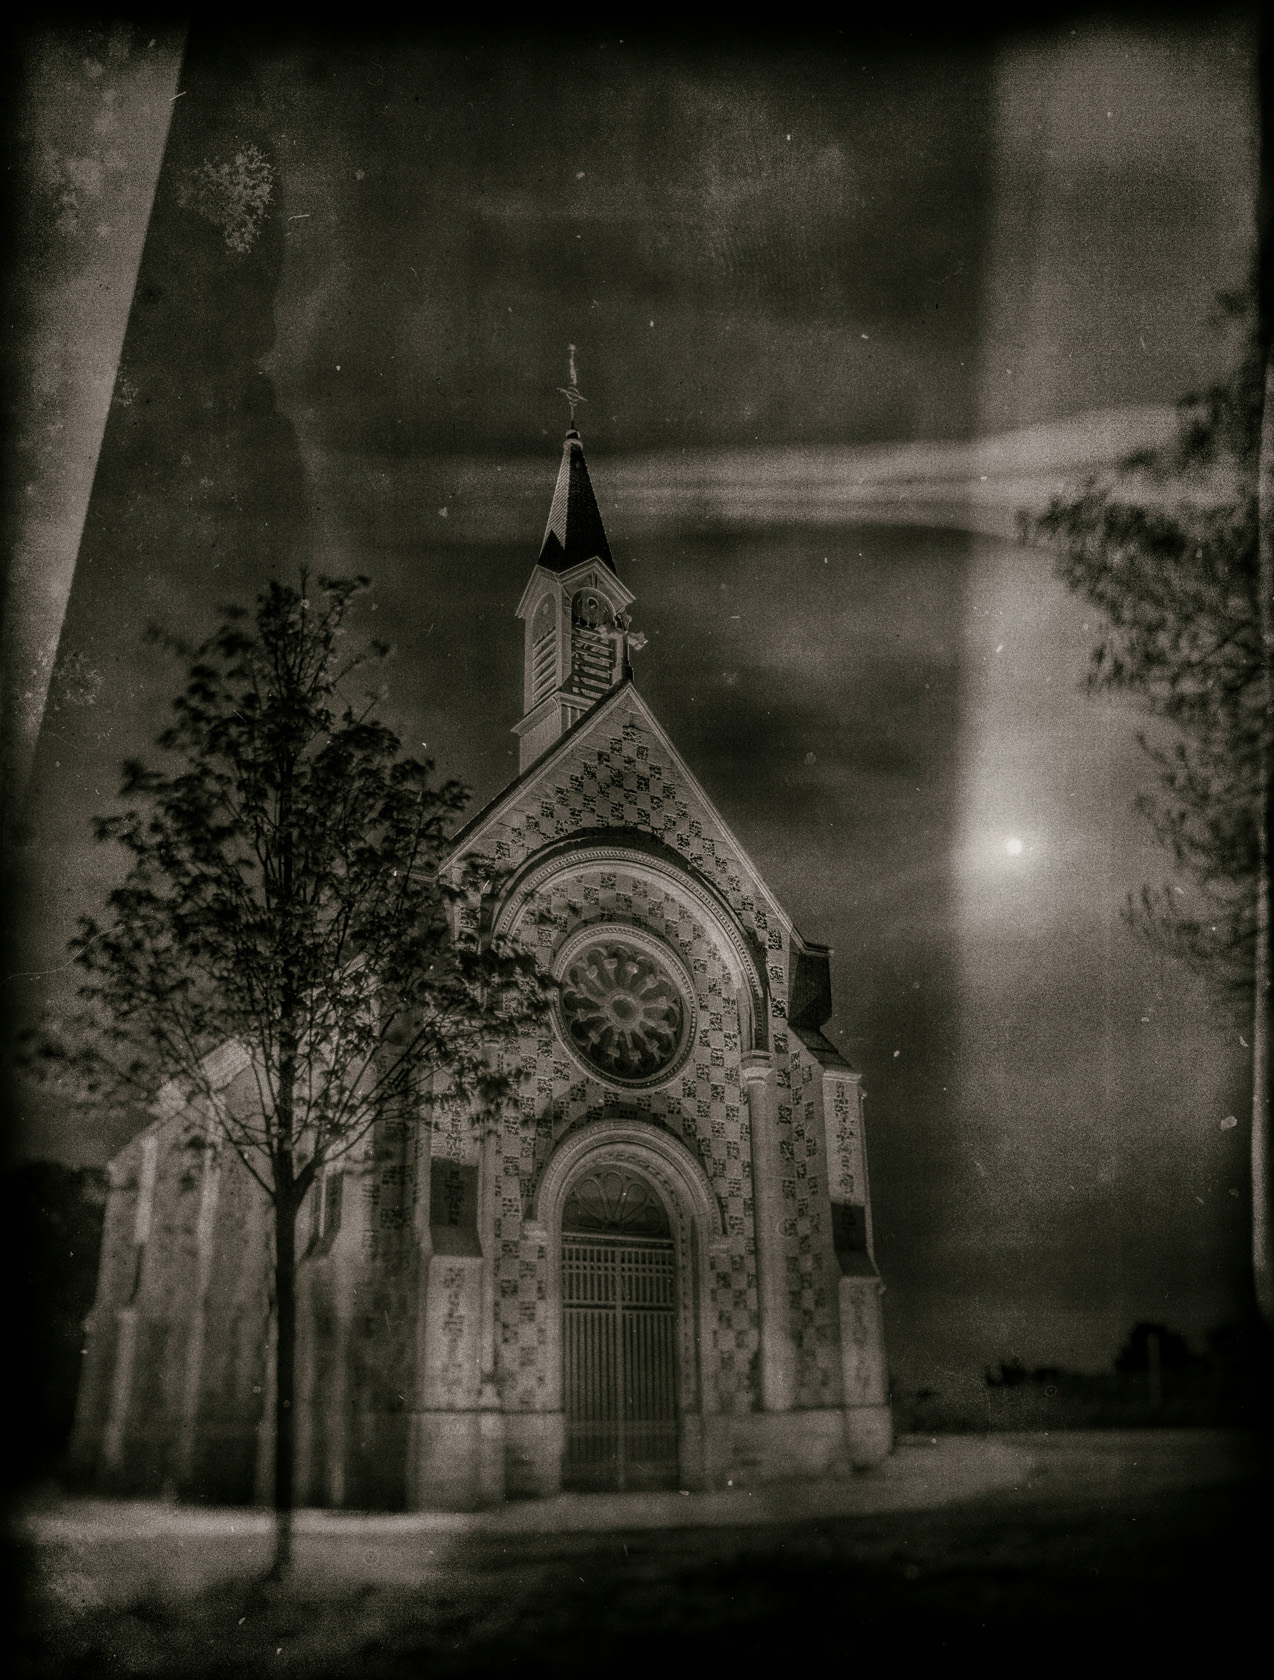 Meilleur Club Chartres Objectif photo 13 La Chapelle de Saint Valery de Georget Christian